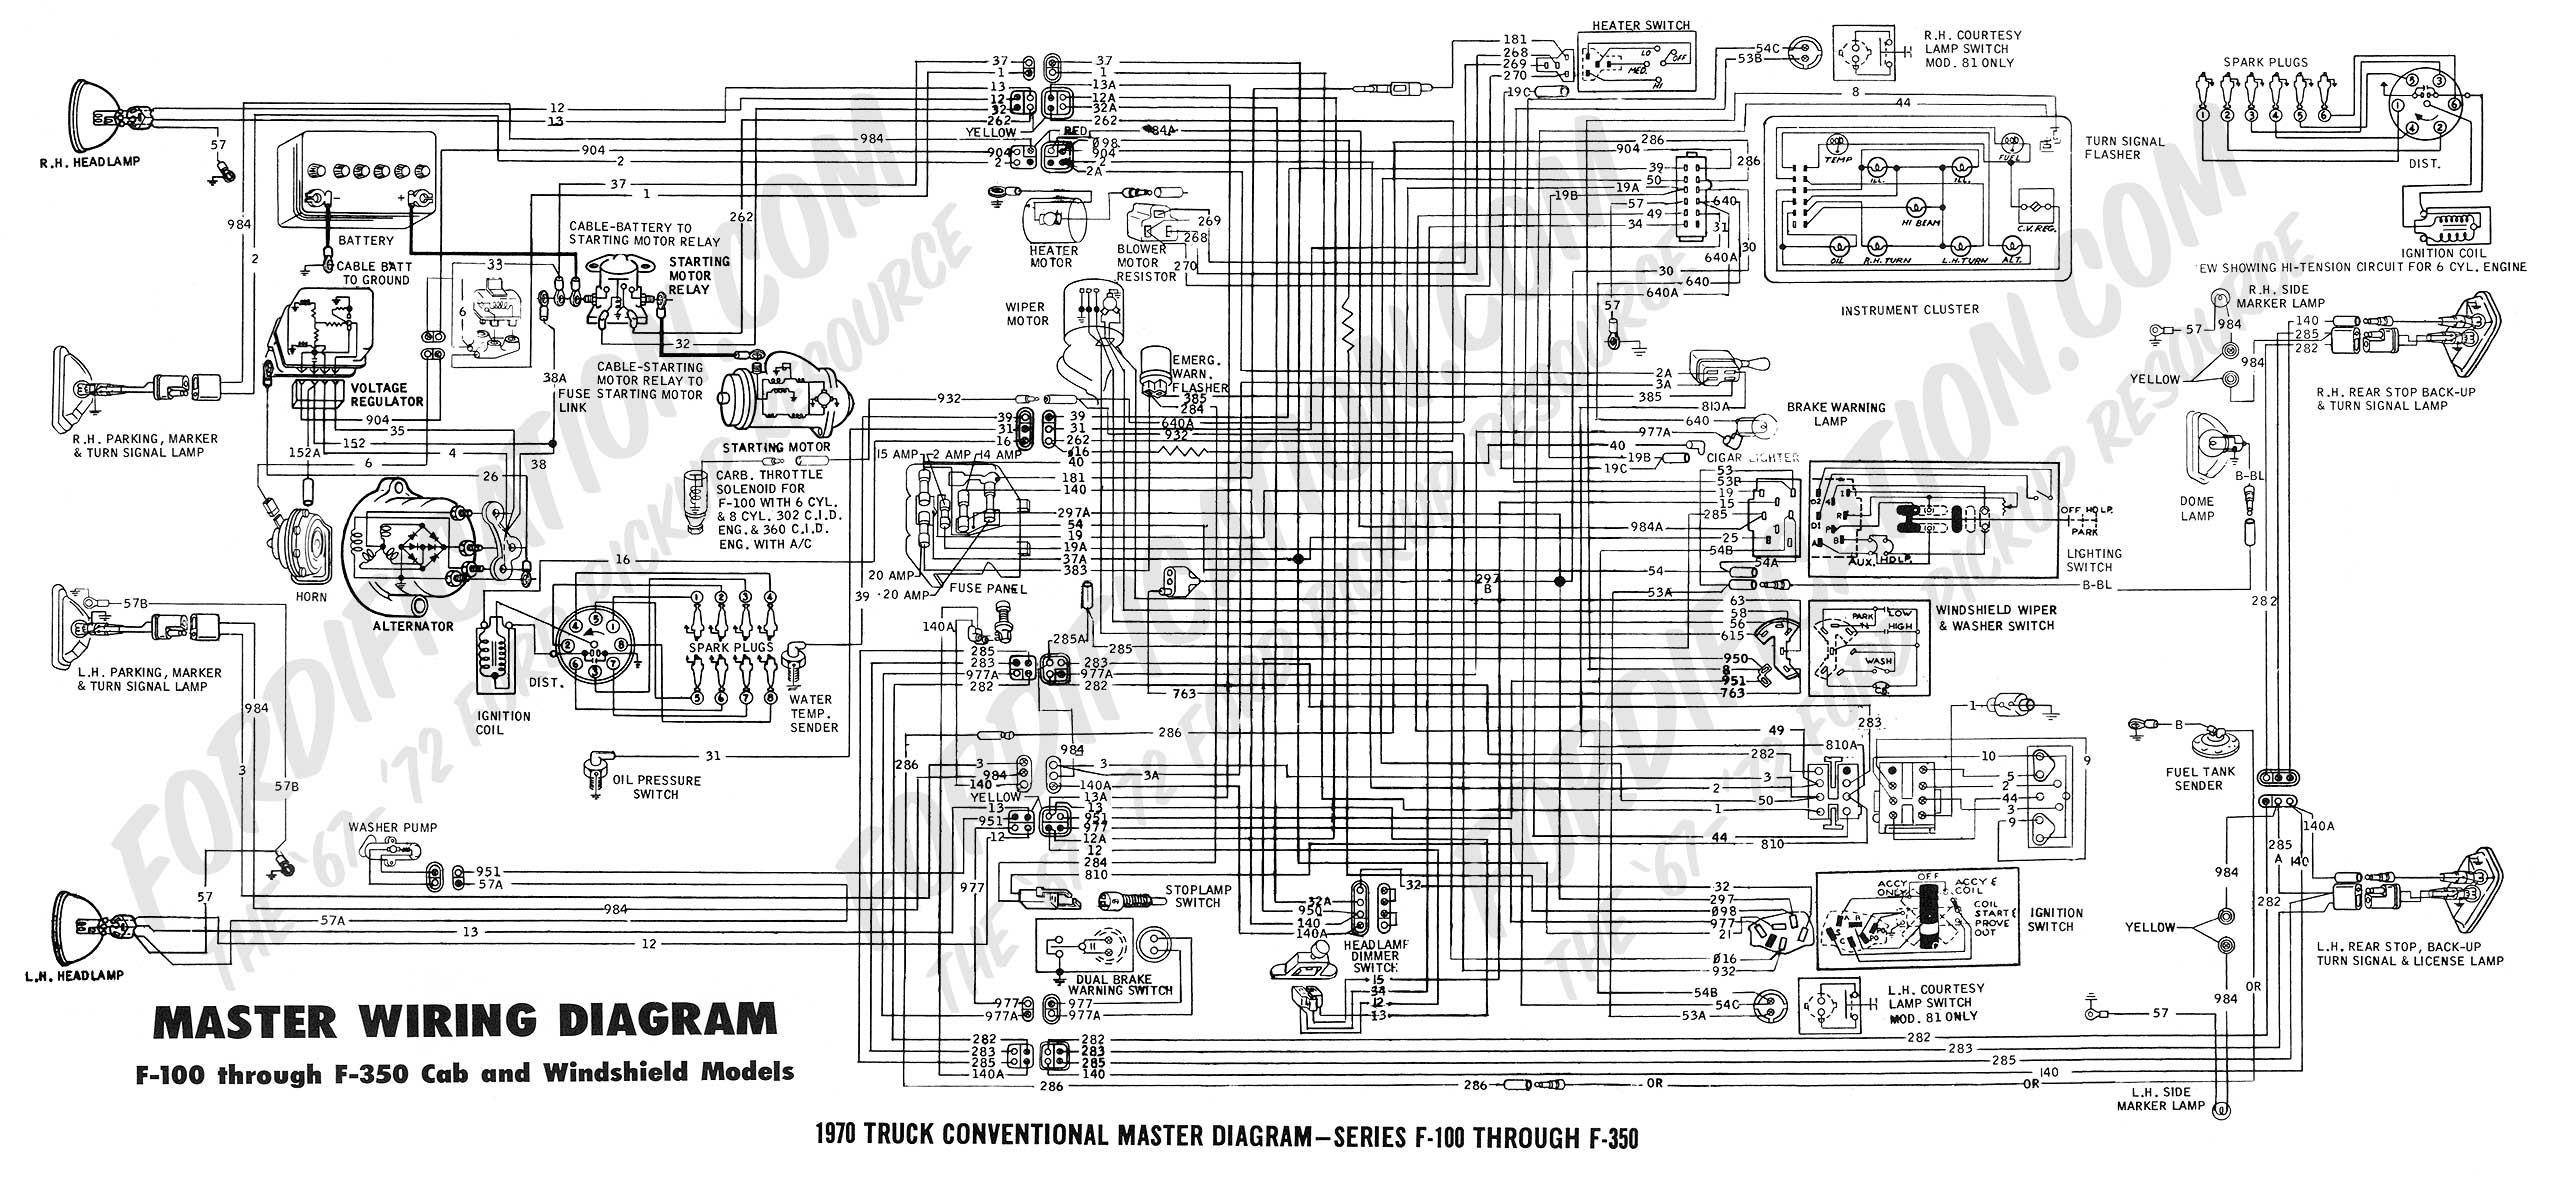 wiring diagram 70_master ford wiring diagrams f250 ford wiring diagrams instruction 2012 f250 wiring diagram at nearapp.co